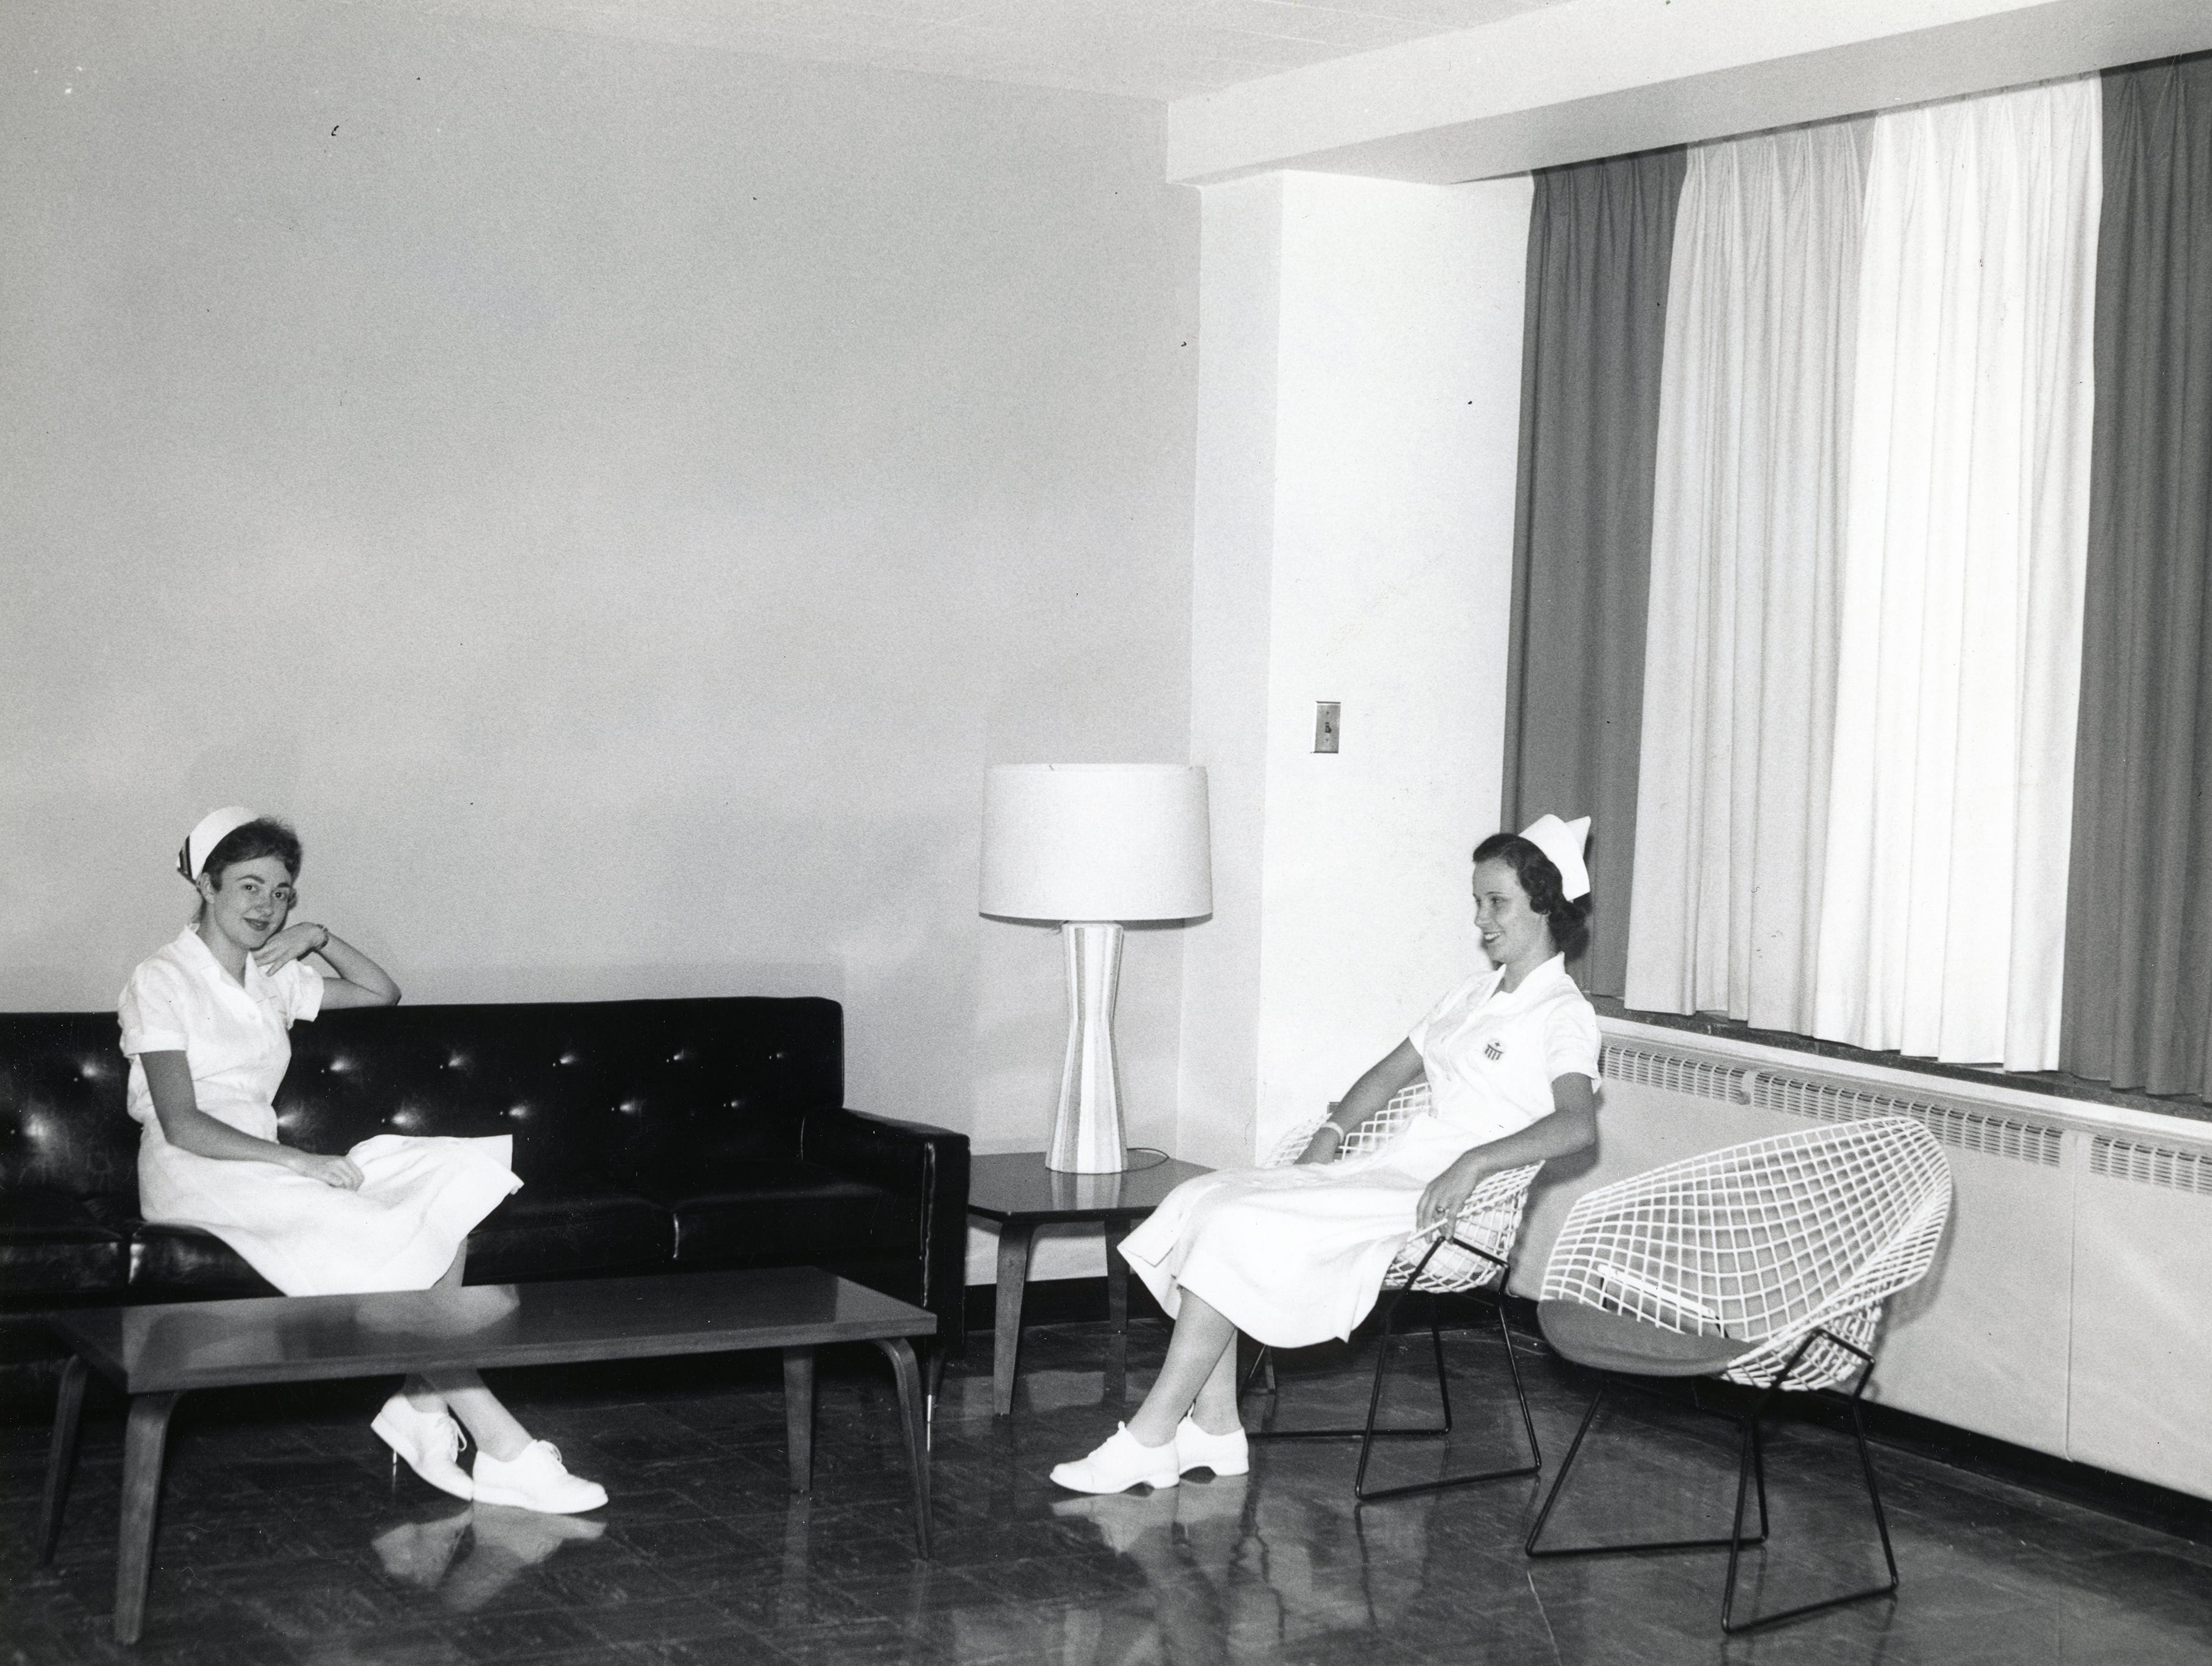 Peggy McMahan and Debra Ambrose at St. Mary's Hospital in the 1950s.